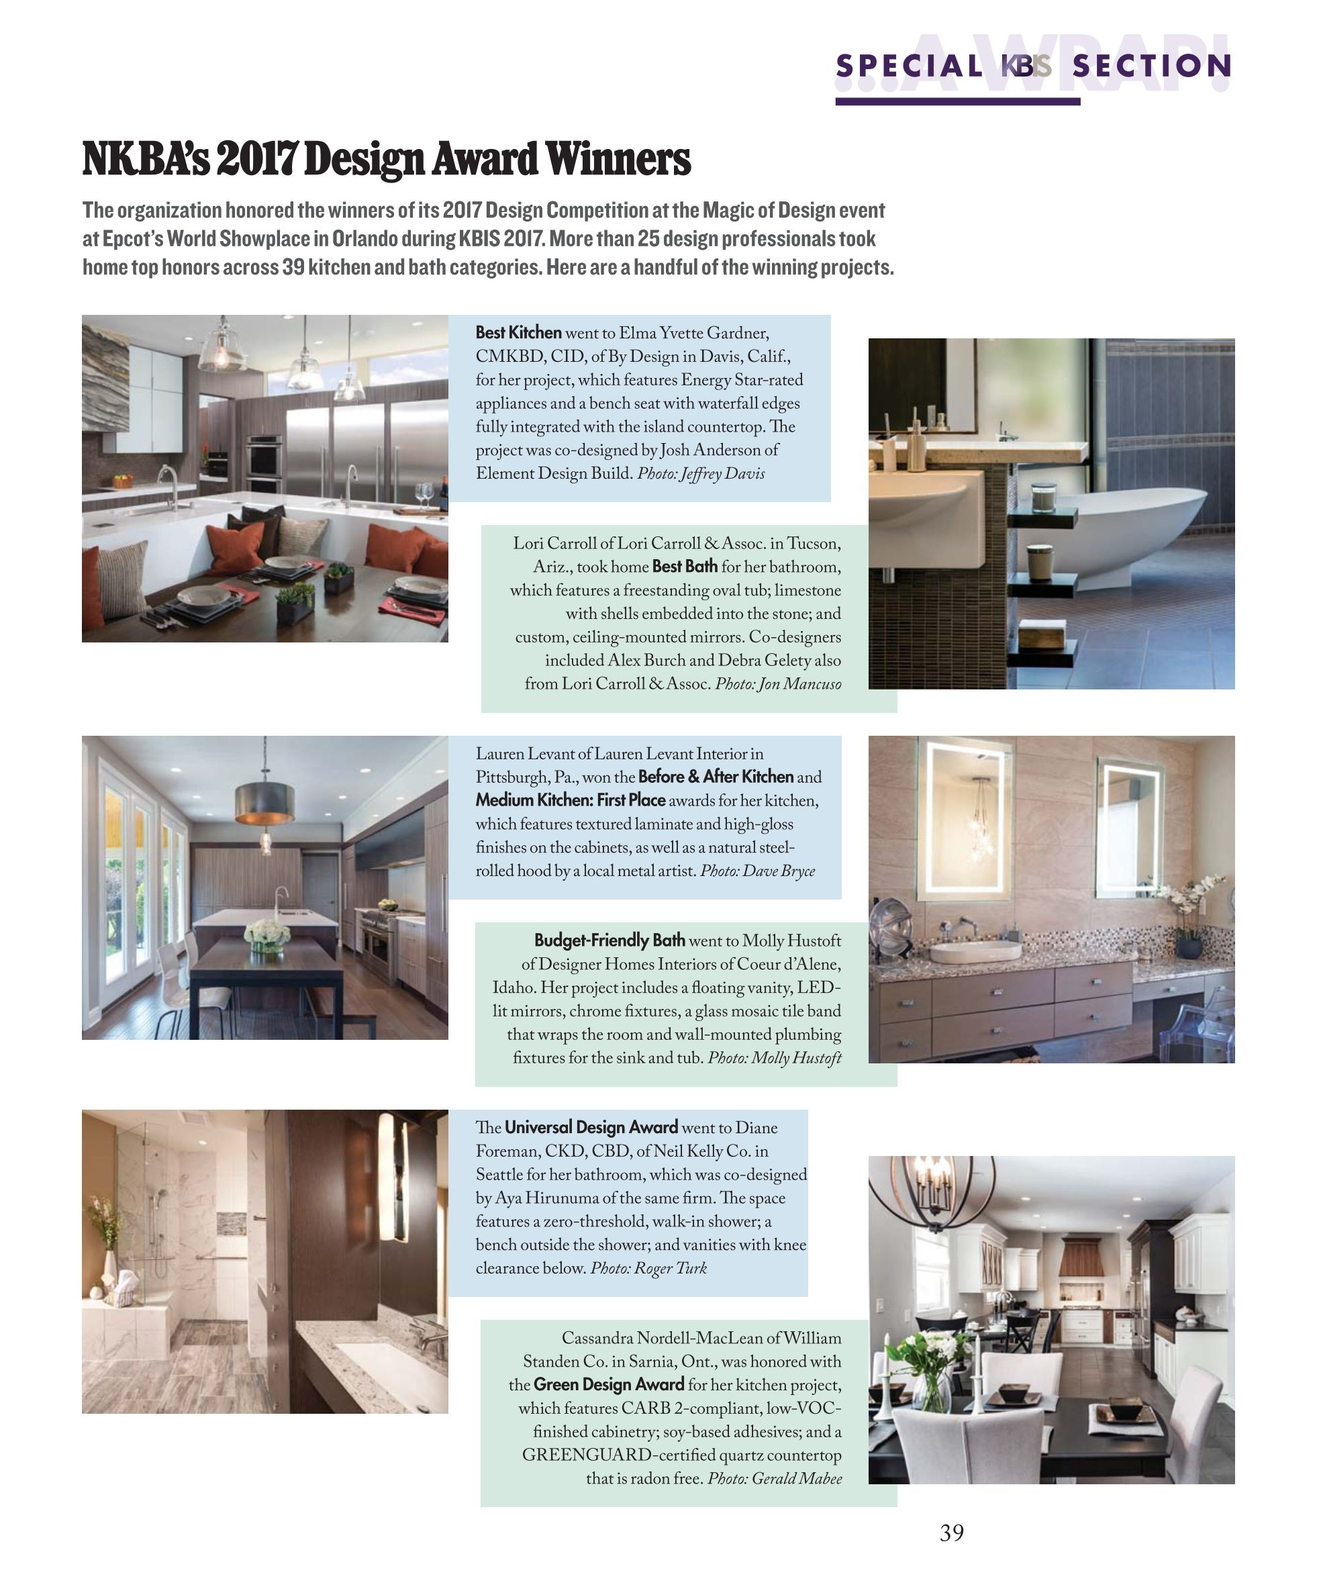 Kitchen & Bath Business - February/March 2017